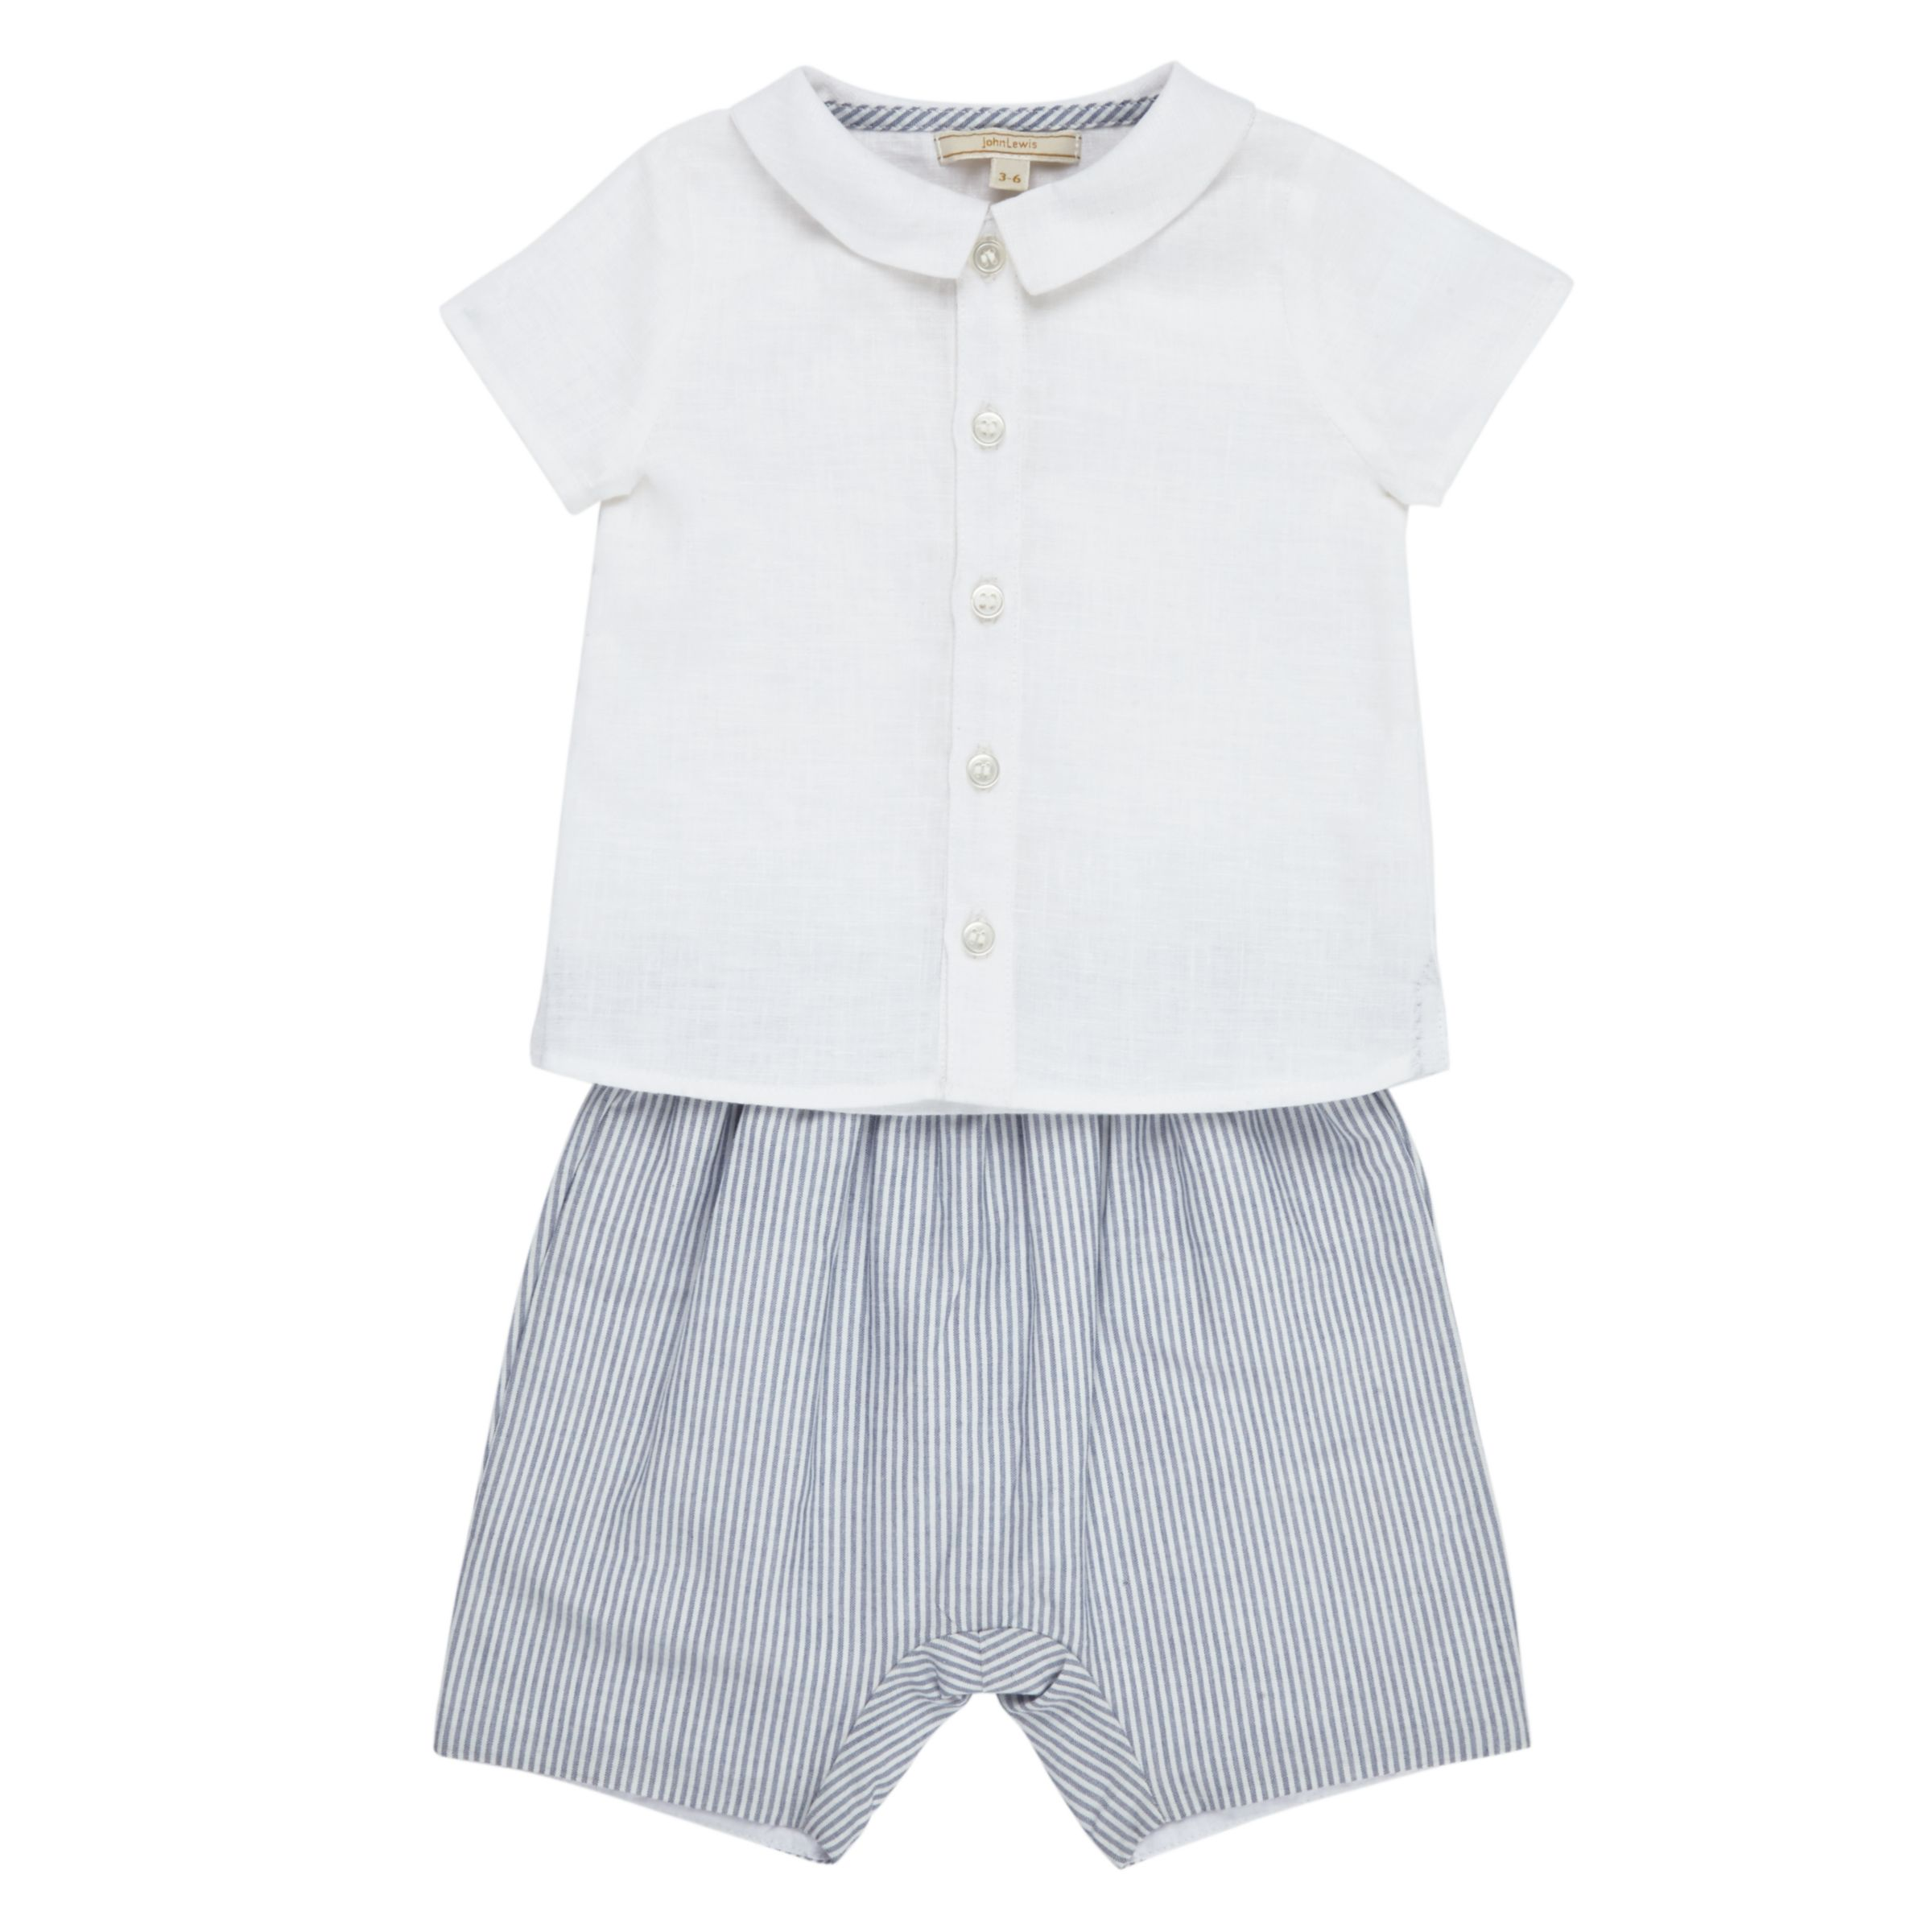 John Lewis Heirloom Collection John Lewis Heirloom Collection Baby Shirt and Shorts Set, Grey/White